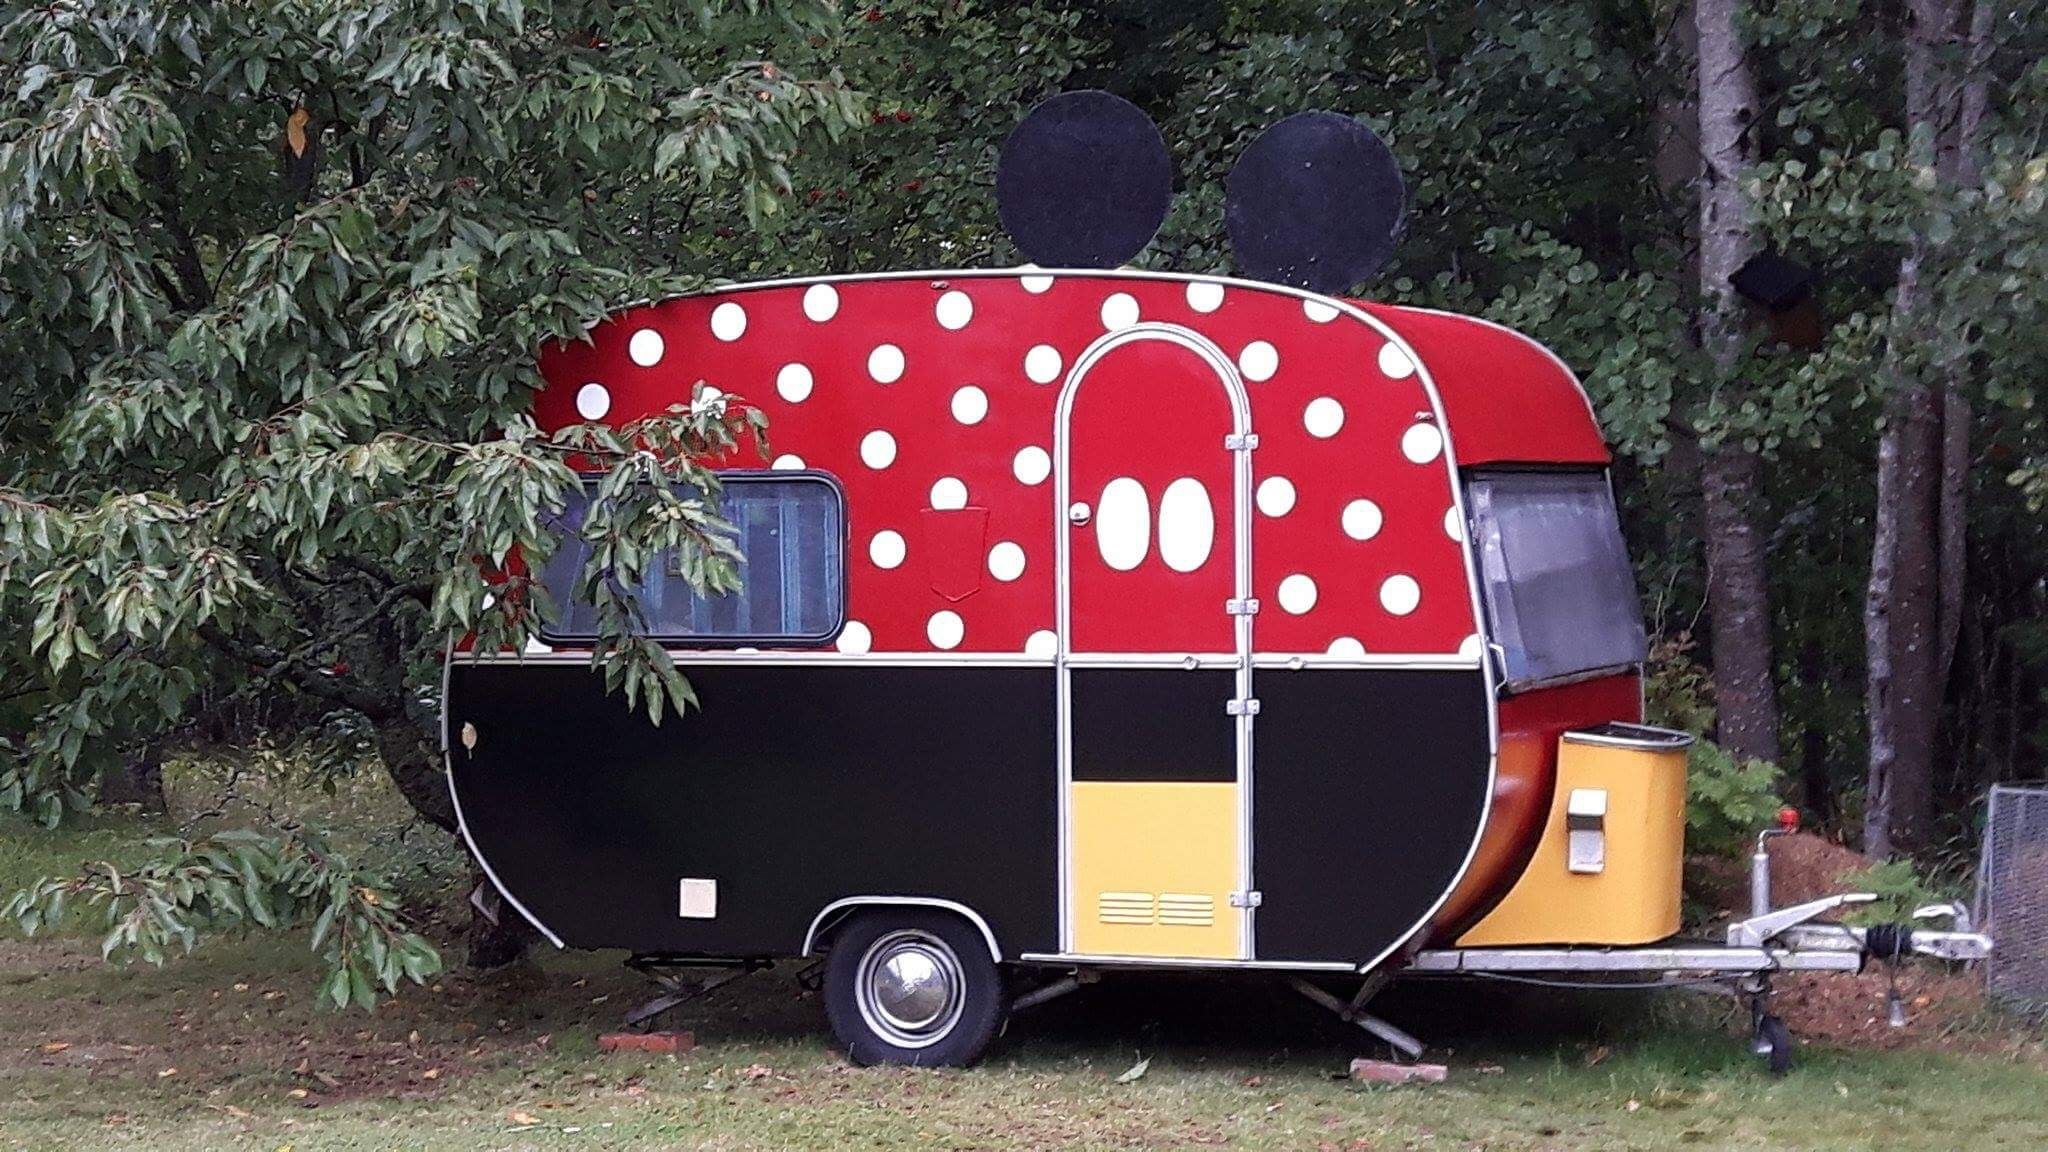 Mickey Mouse Wohnwagen